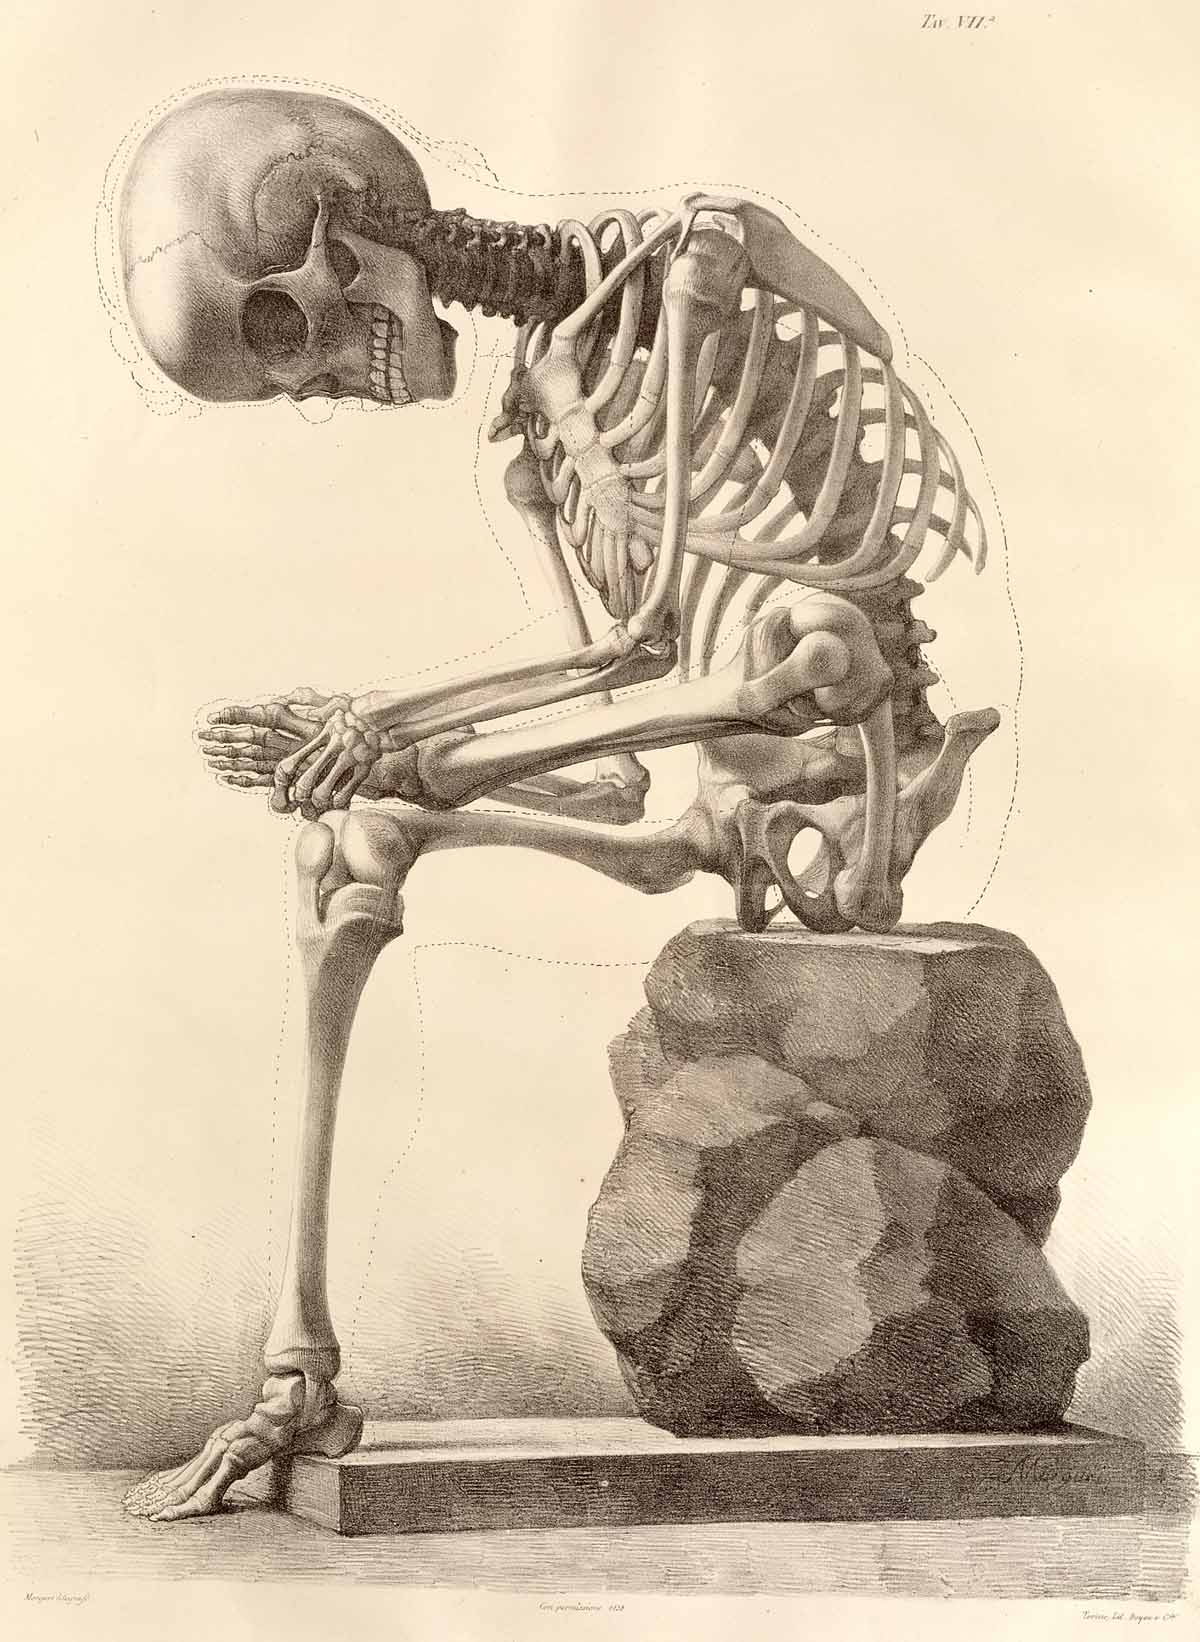 drawing of a skeleton sitting on a rock, leaning forward